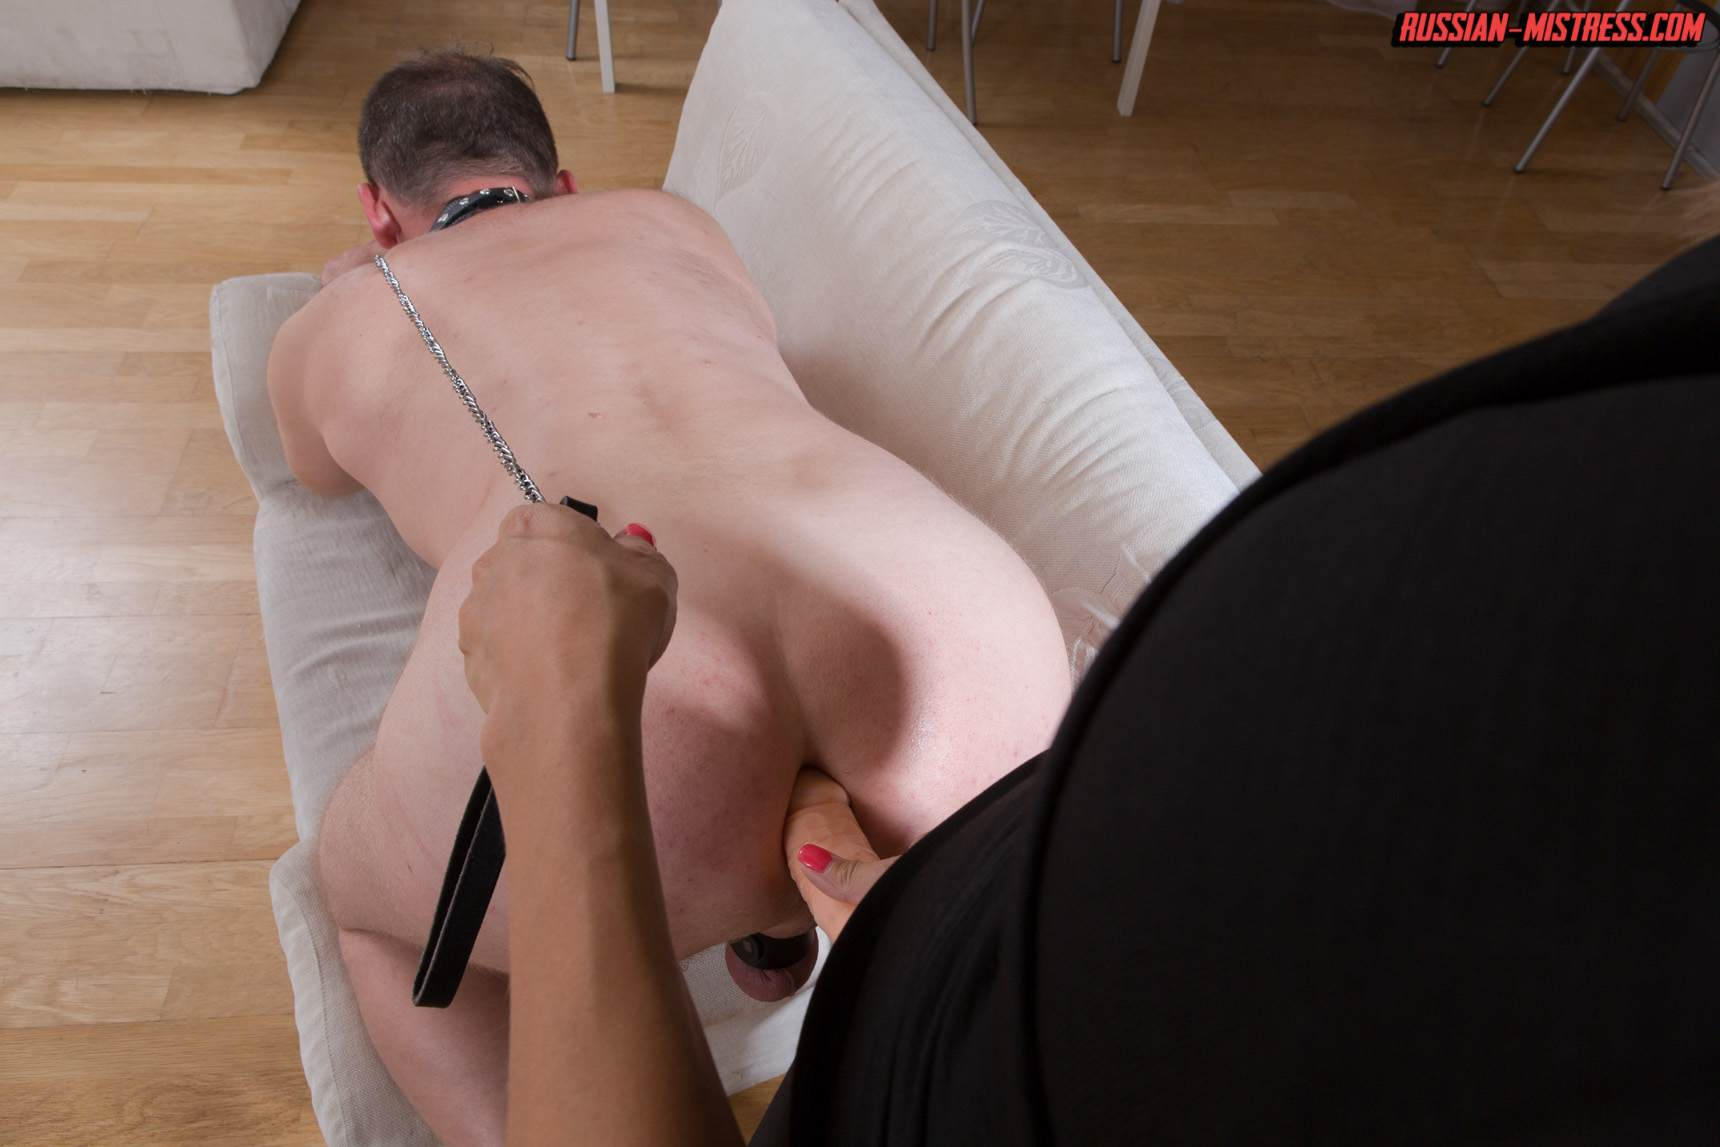 Picture #14 of Mistress is keeping slave motivated for legs worship with harsh whip lashes and then rewards him with deep anal strap-on penetration